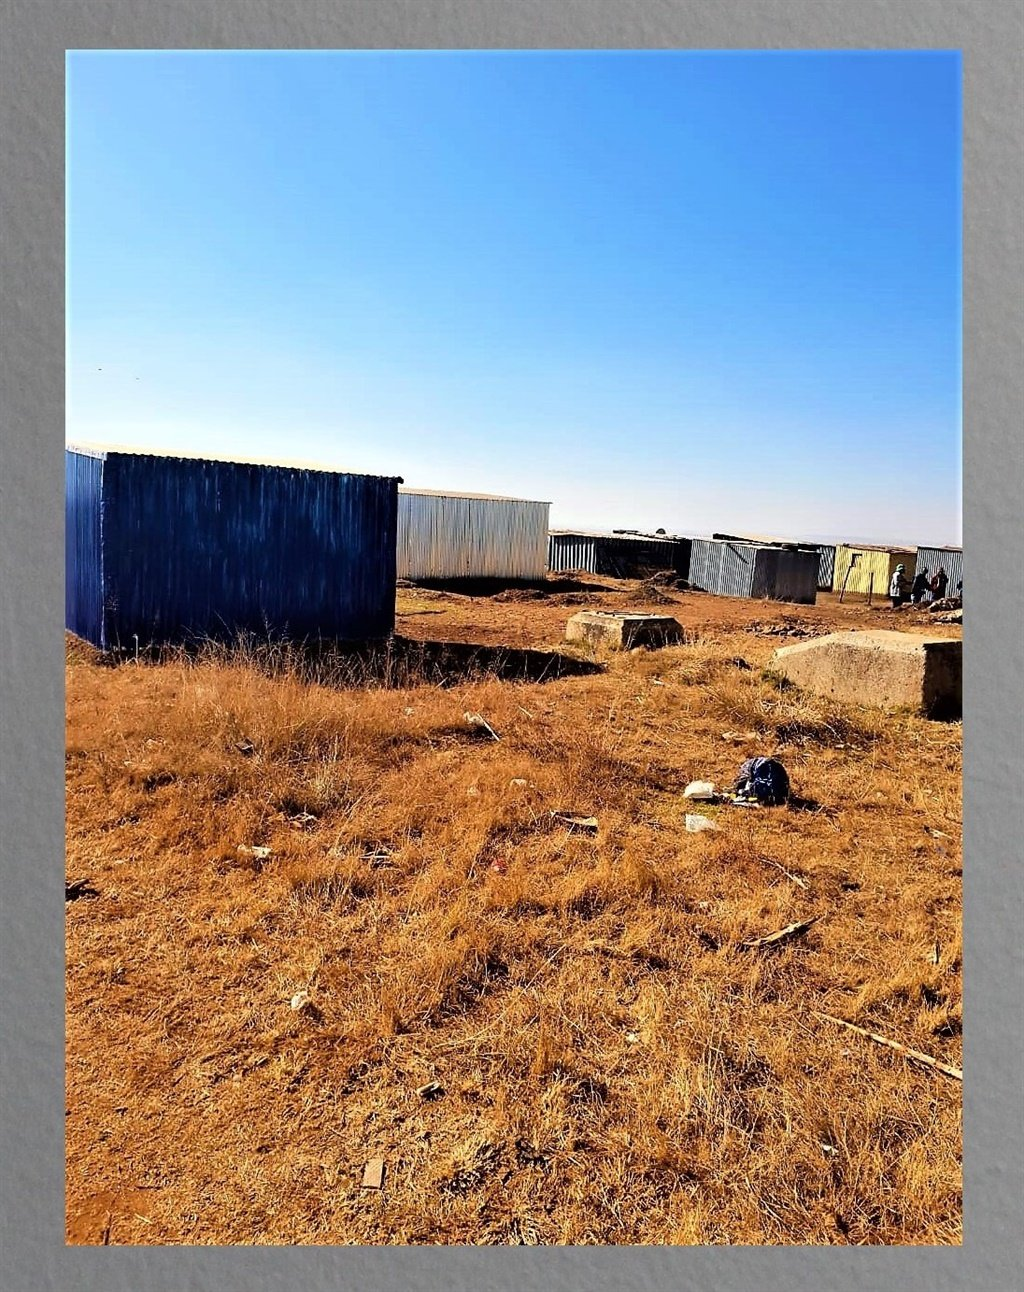 the illegal structures put up at Mandela Park in E